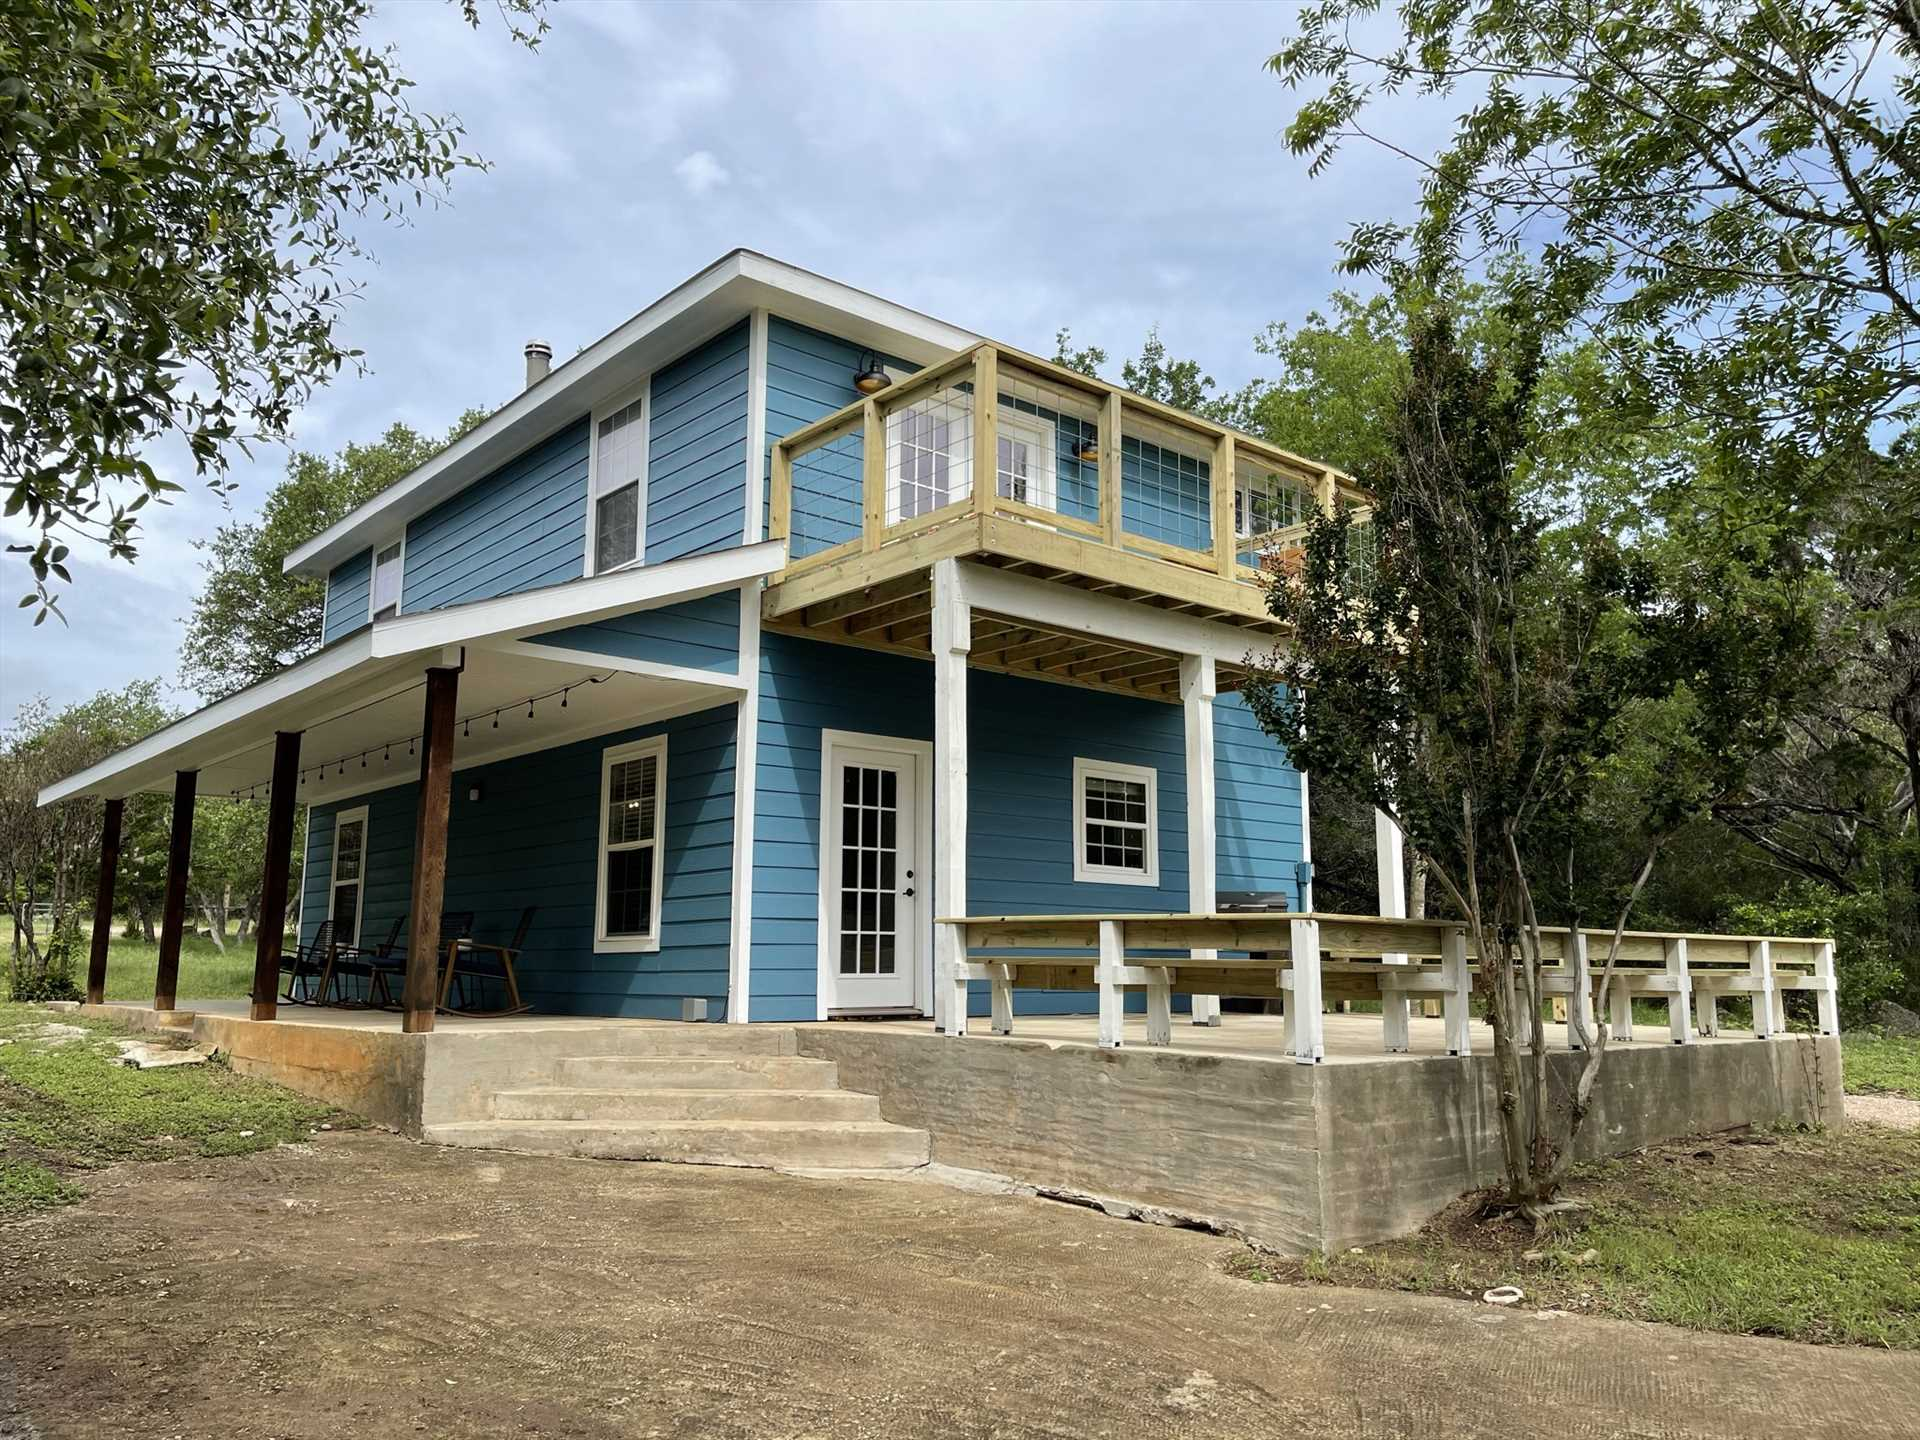 What a big and beautiful family getaway space! We'd love to welcome you to your home away from home in the Hill Country.